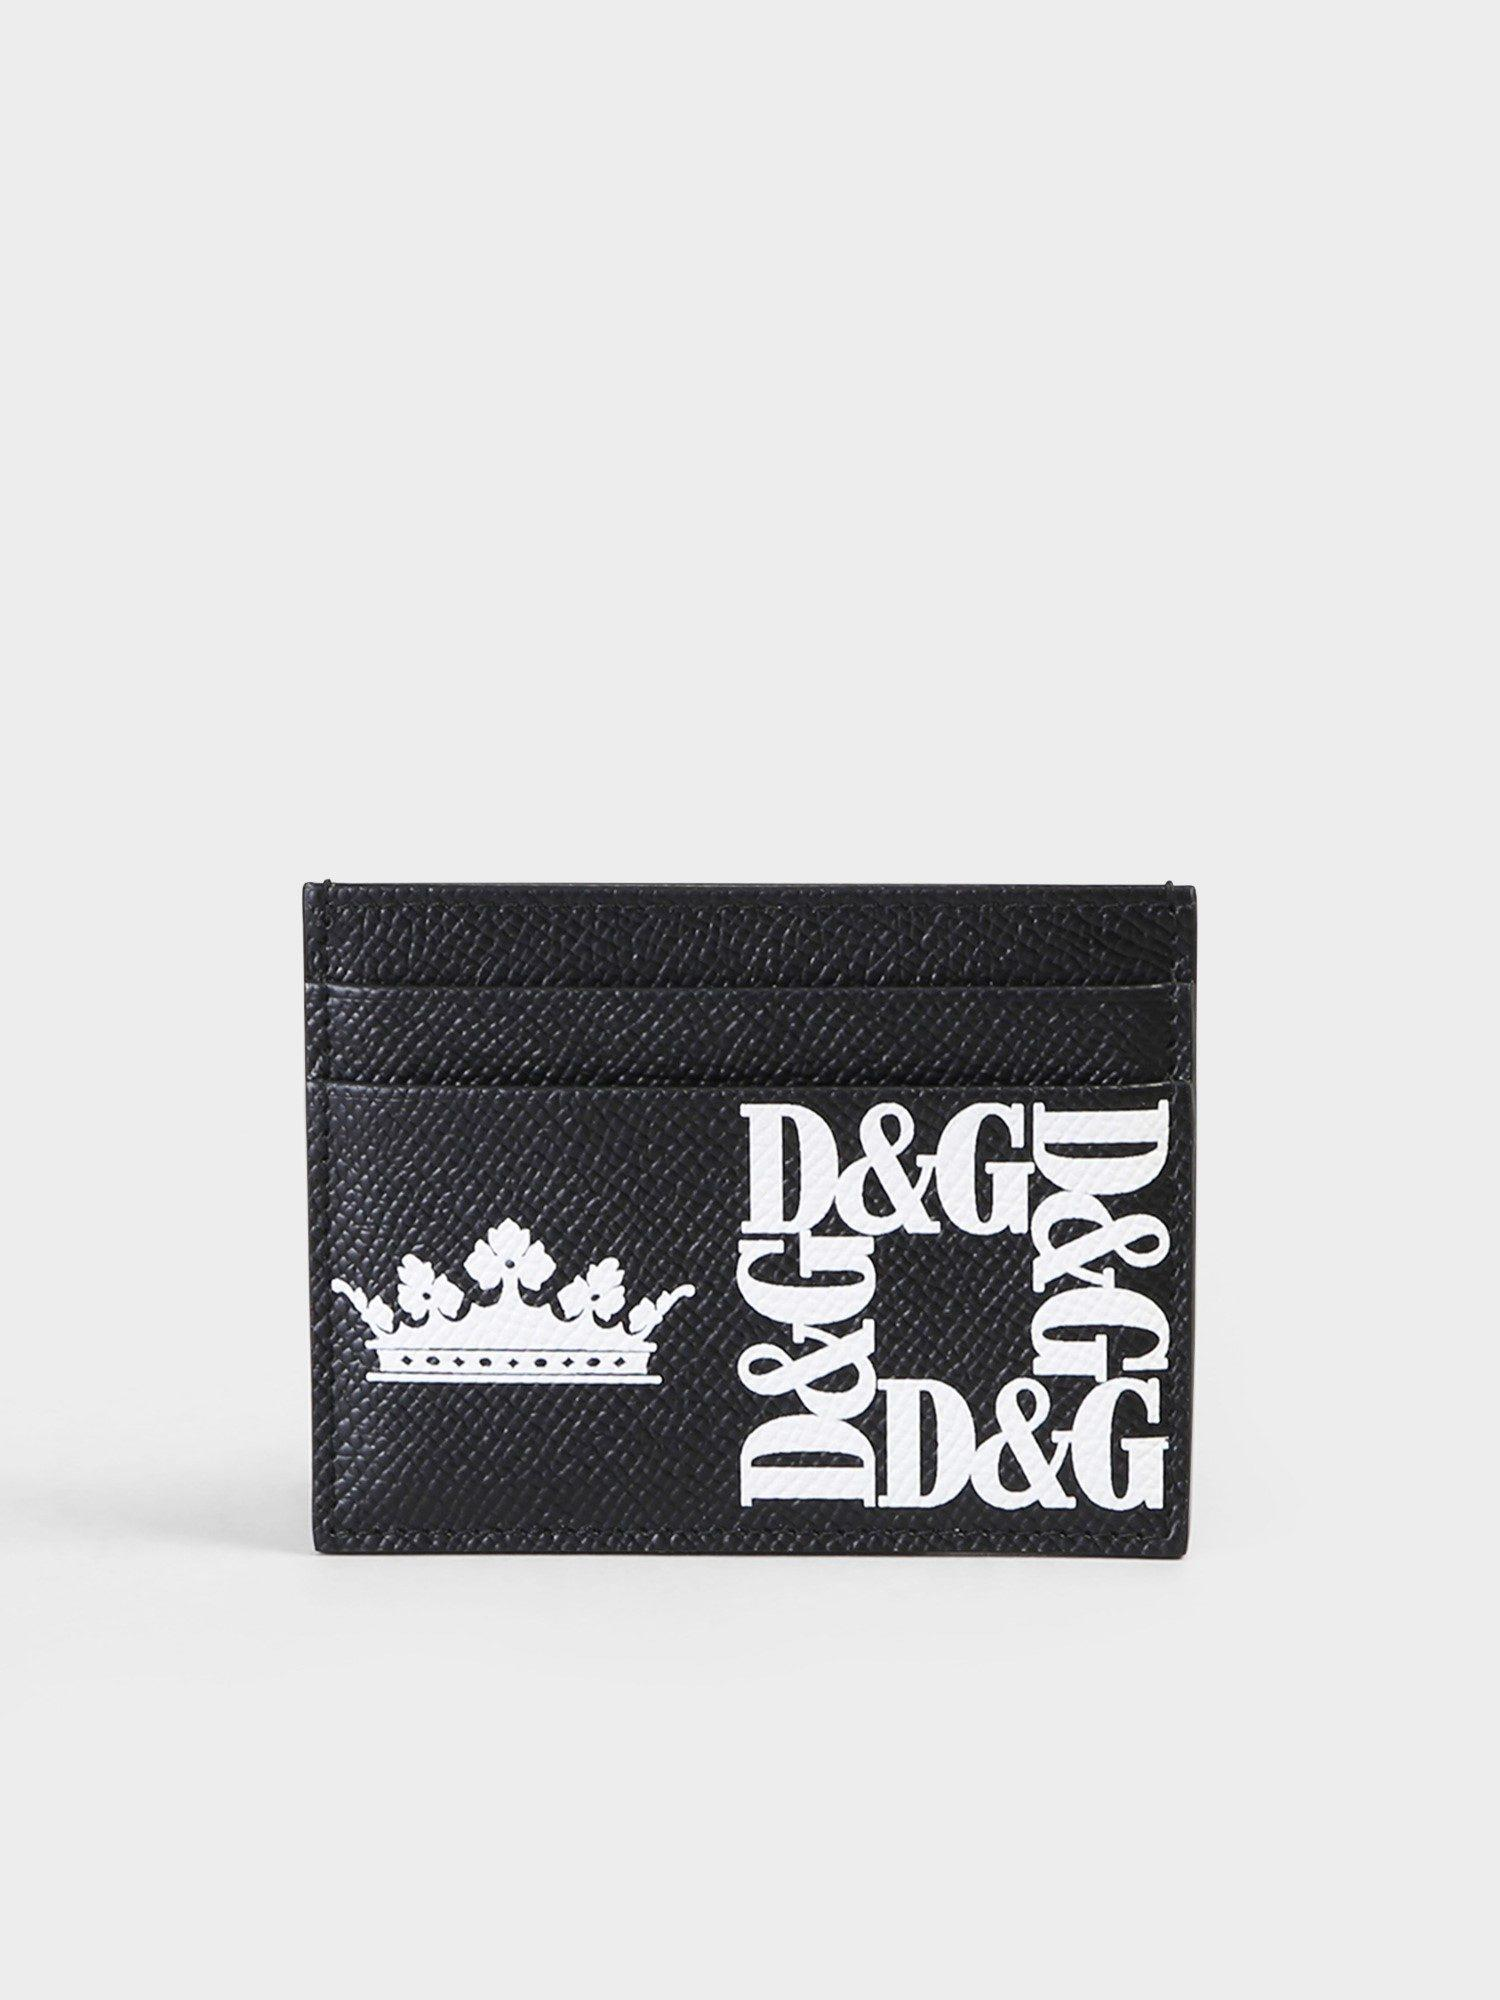 728e726f67 Dolce & Gabbana Printed Leather Card Holder in Black for Men - Lyst